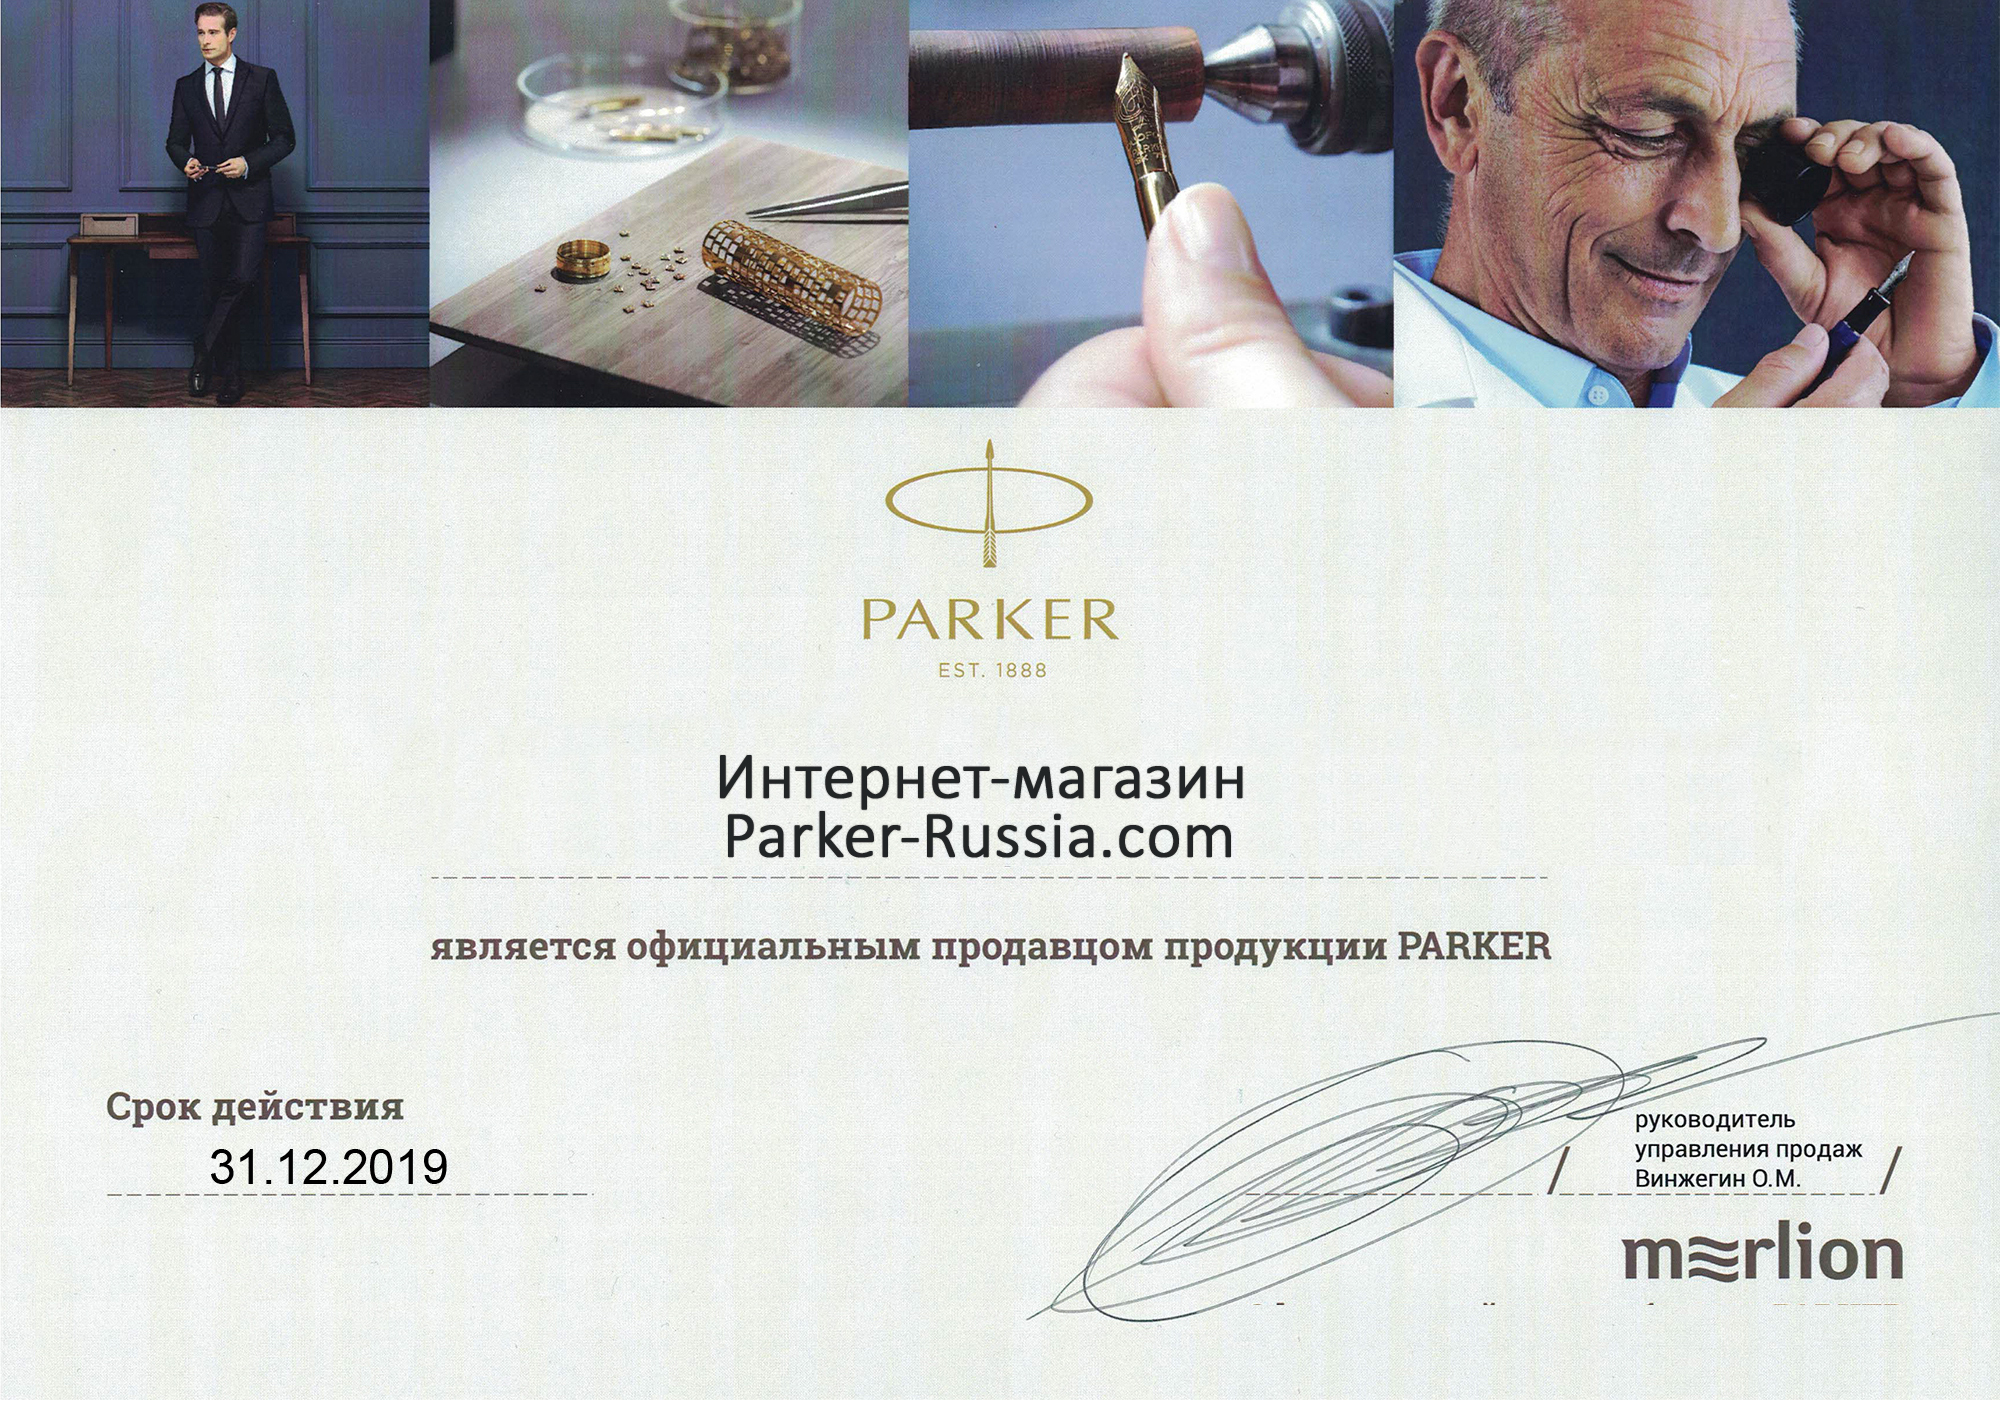 parker russia1